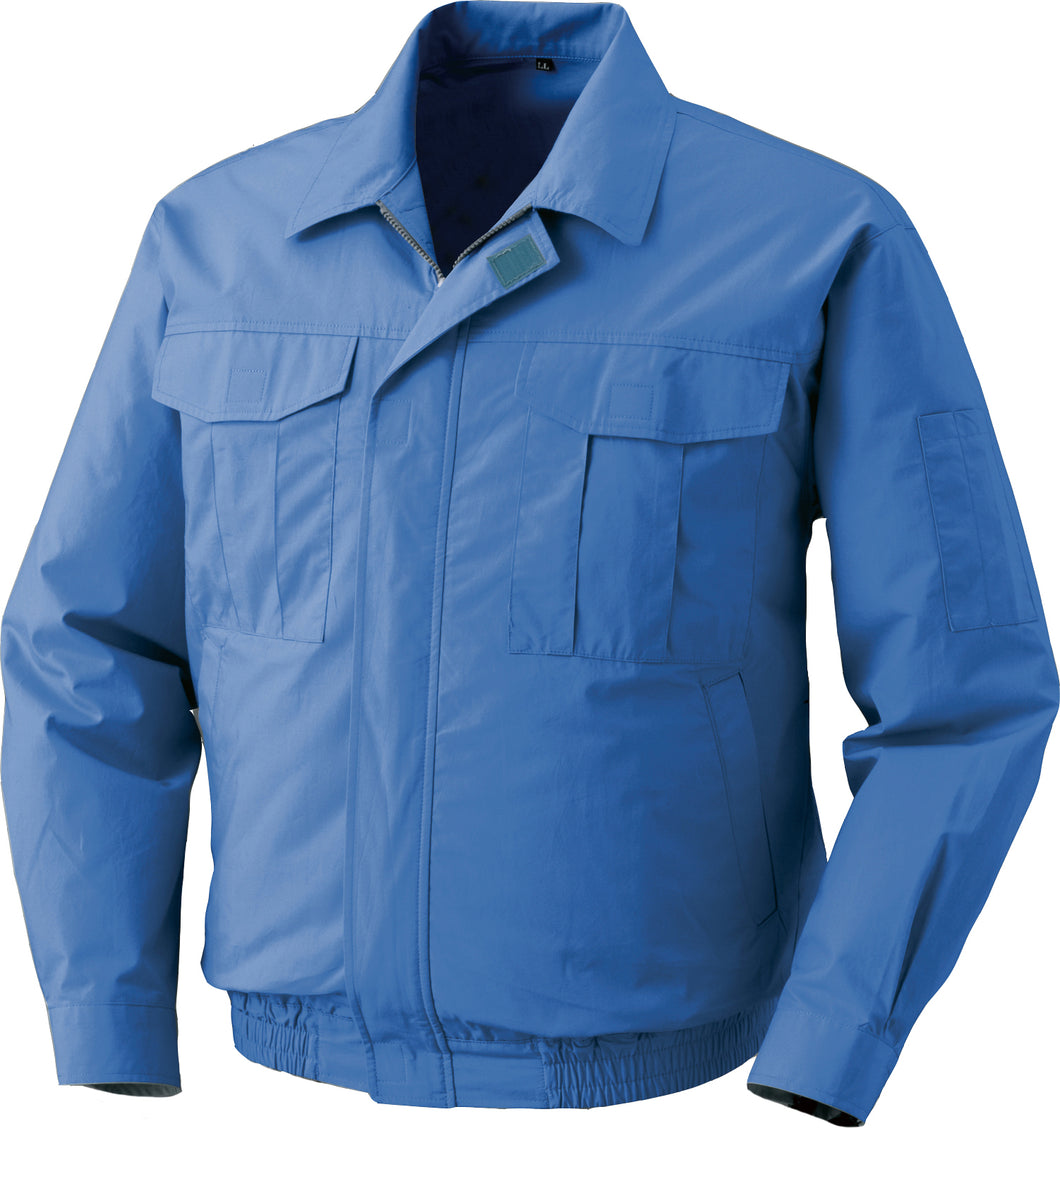 Best Cooling Jacket - Long Sleeve 100% Cotton for Construction Work